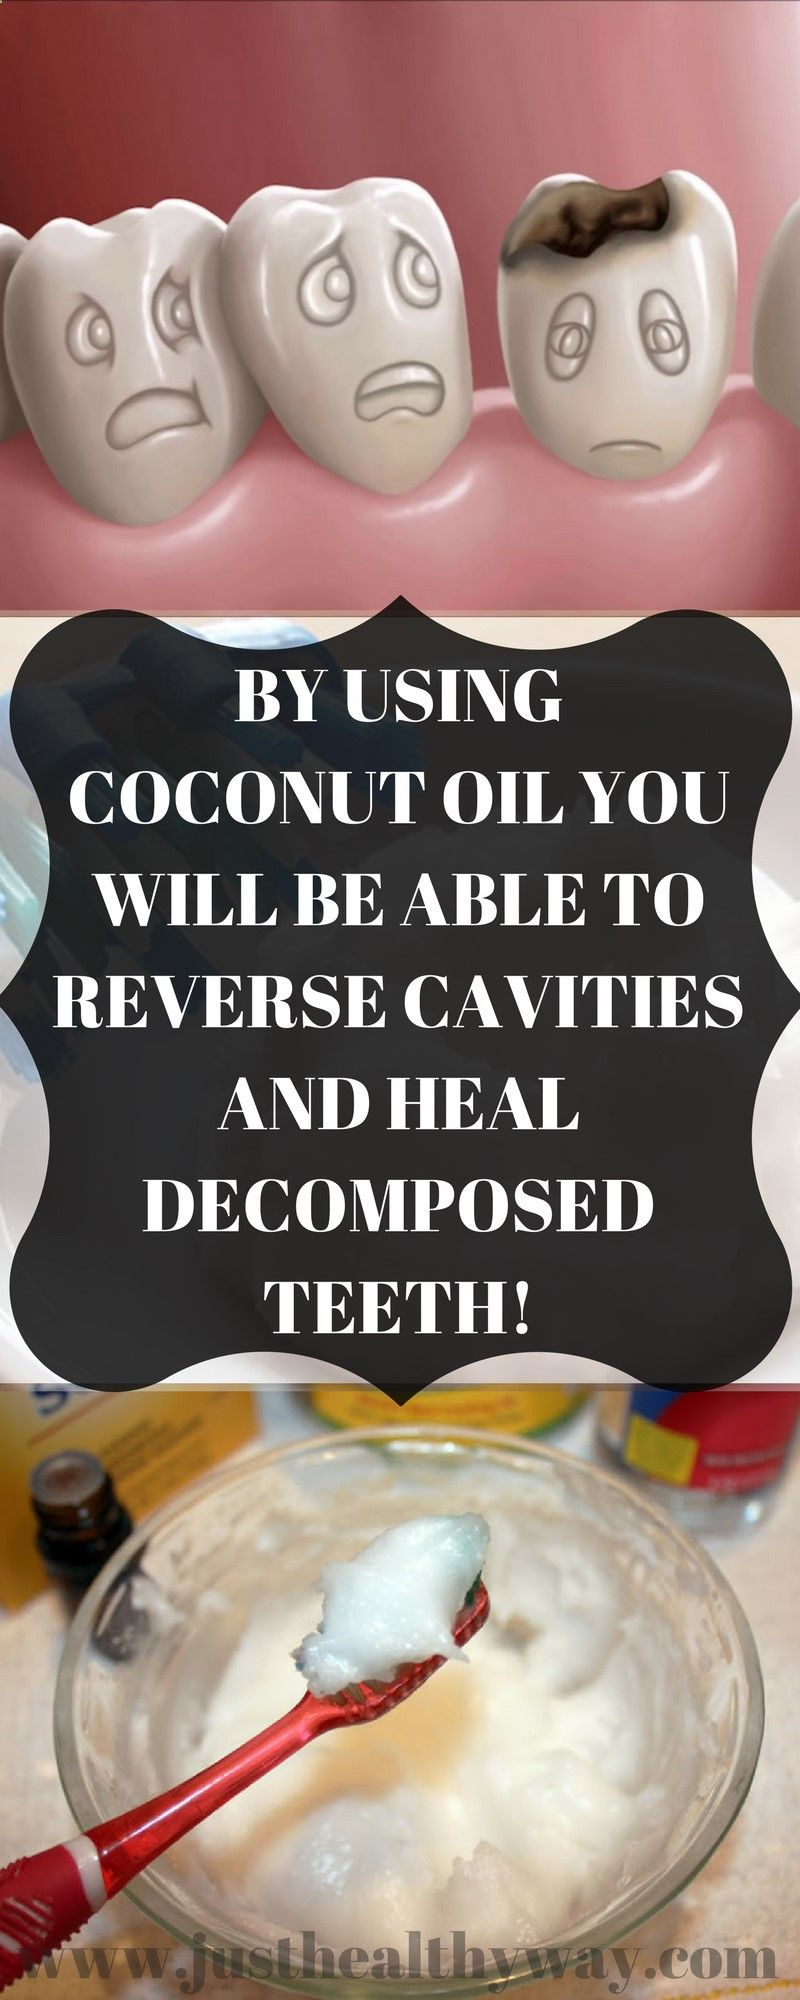 Coconut Oil Uses  Coconut oil is one of the most versatile and